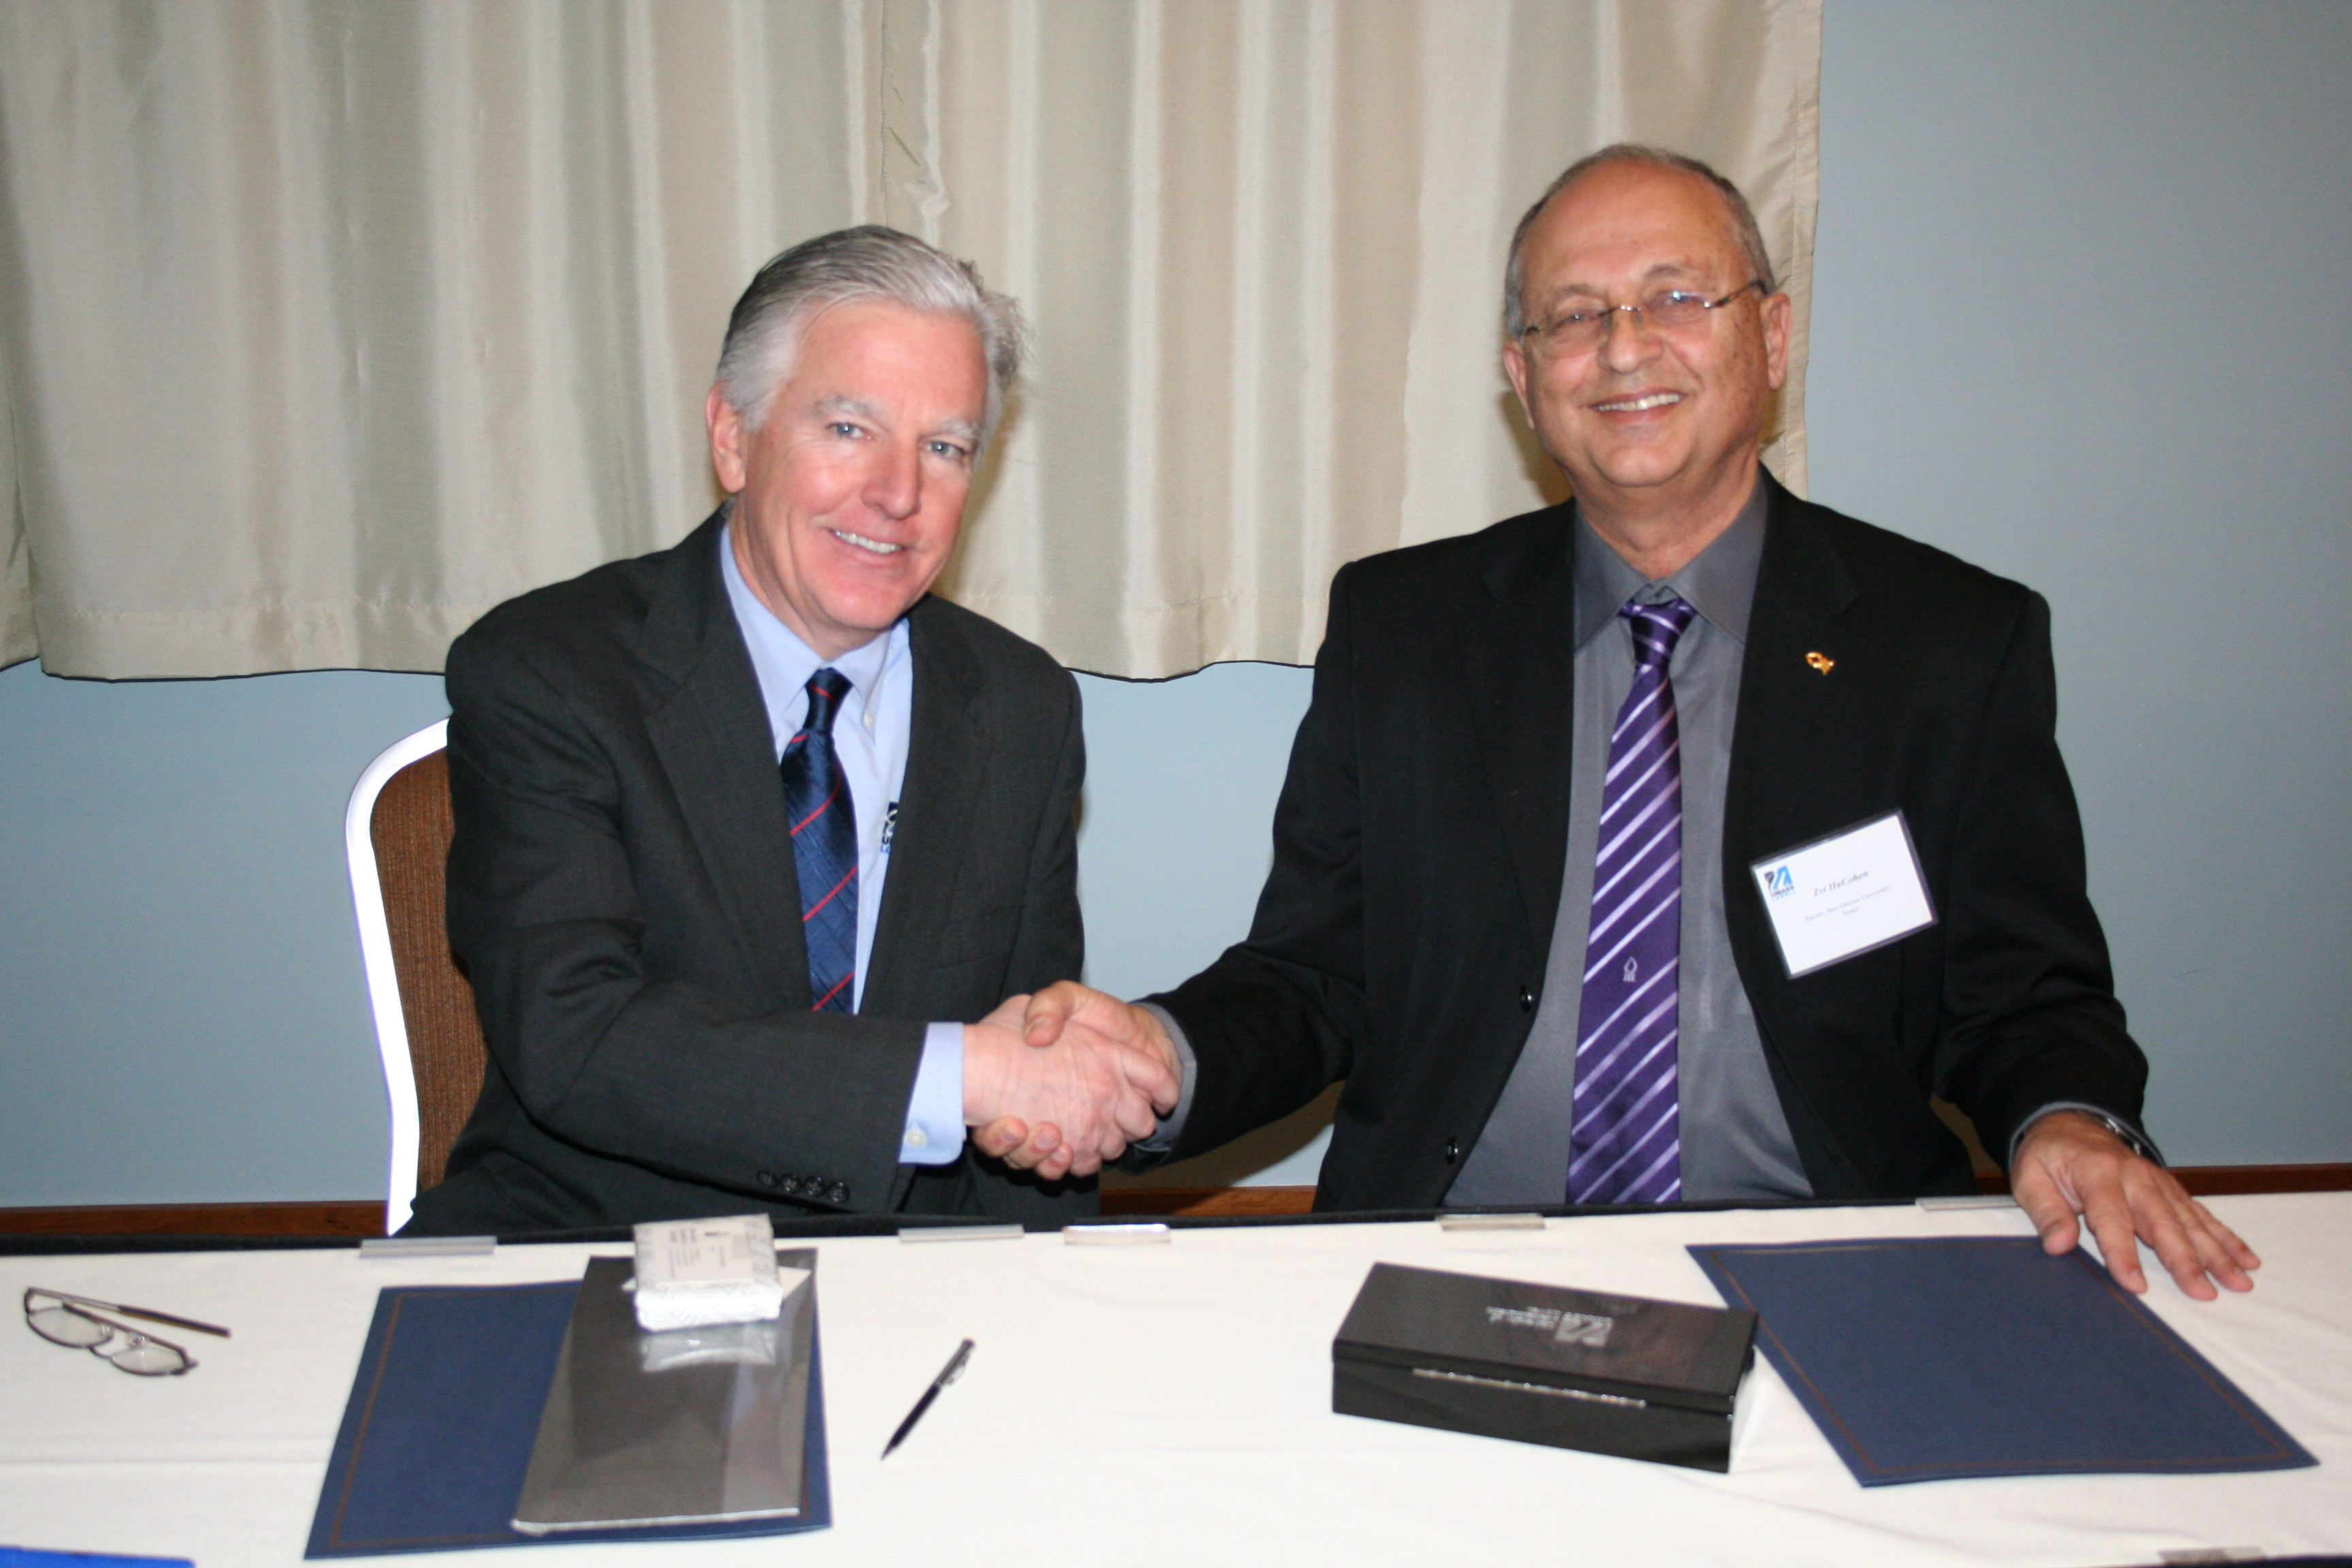 Chancellor Marty Meehan and Rector Zvi HaCohen of Israel's Ben-Gurion University sign an agreement that outlines areas of academic, research and experiential learning collaboration.